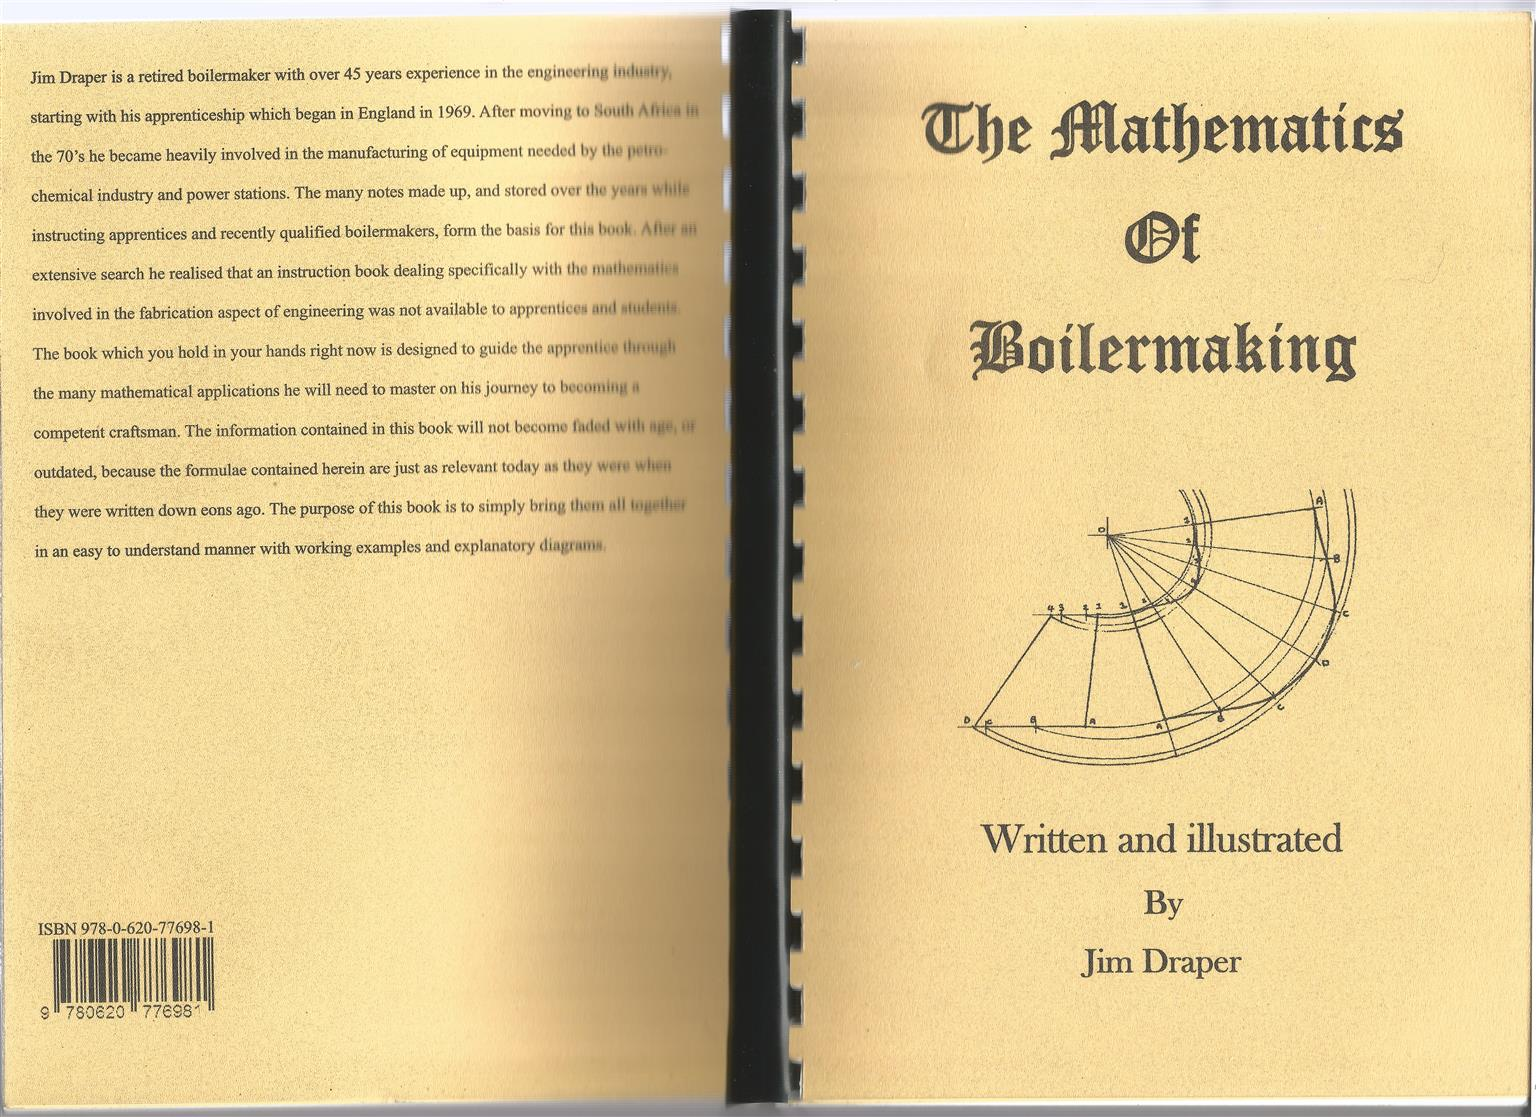 The Mathematics of Boilermaking